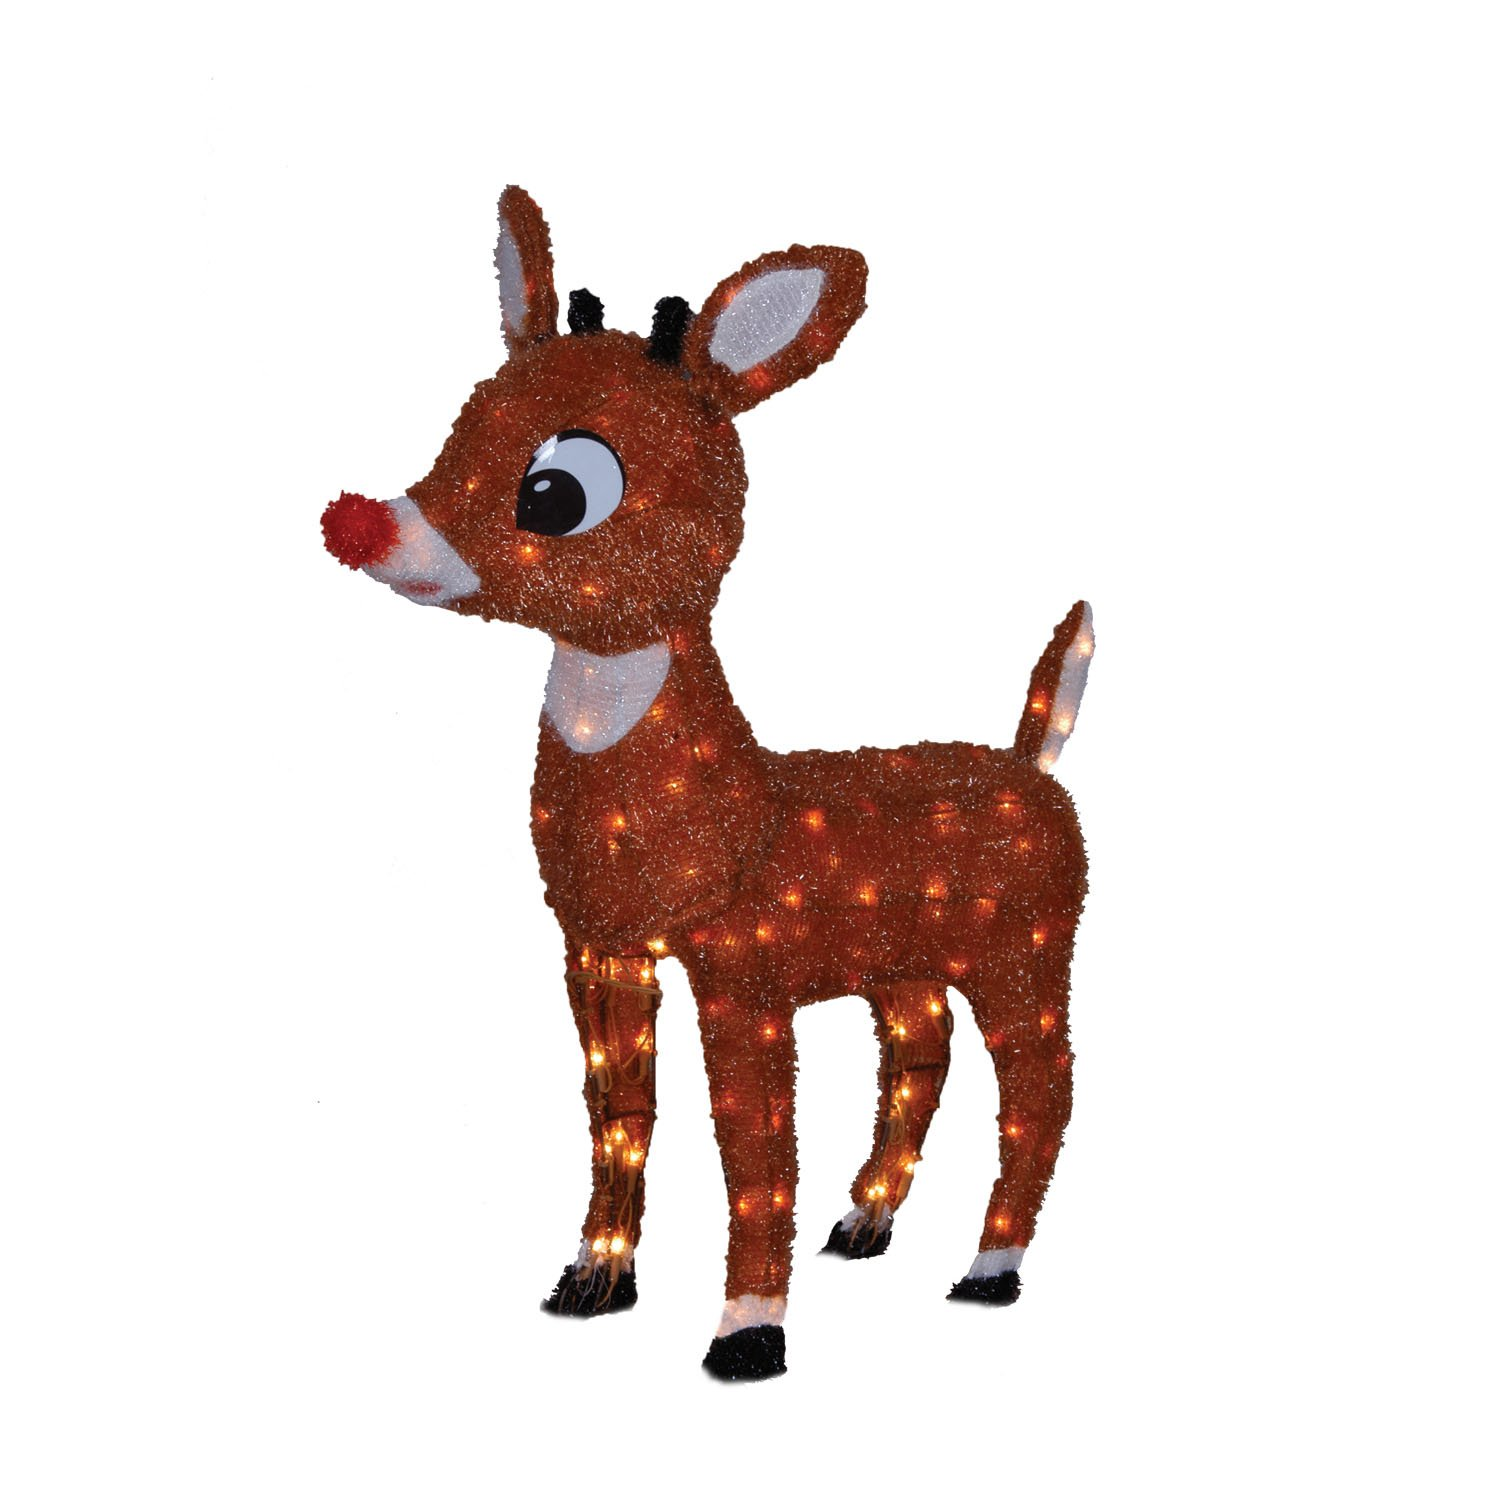 Amazon.com : ProductWorks 26-Inch Pre-Lit Rudolph the Red-Nosed Reindeer  Soft Tinsel Christmas Yard Decoration, 100 Lights : Patio, Lawn & Garden - Amazon.com : ProductWorks 26-Inch Pre-Lit Rudolph The Red-Nosed